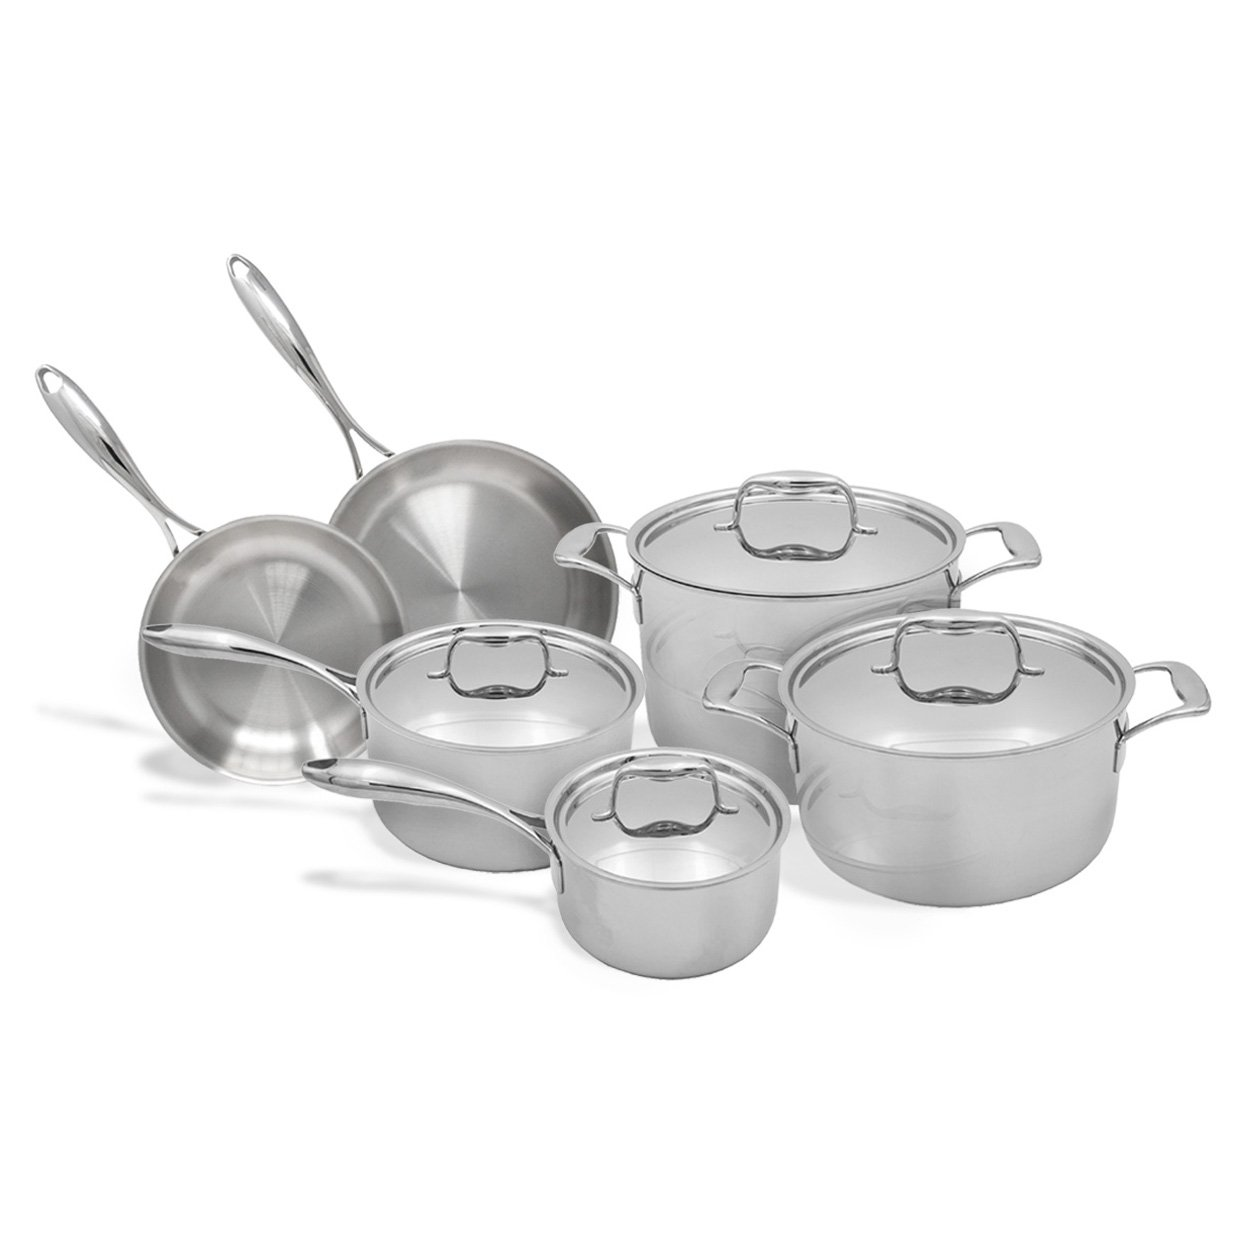 Tuxton Home THBCV10-SS-G Duratux Cookware, 10PC Set, Stainless Steel